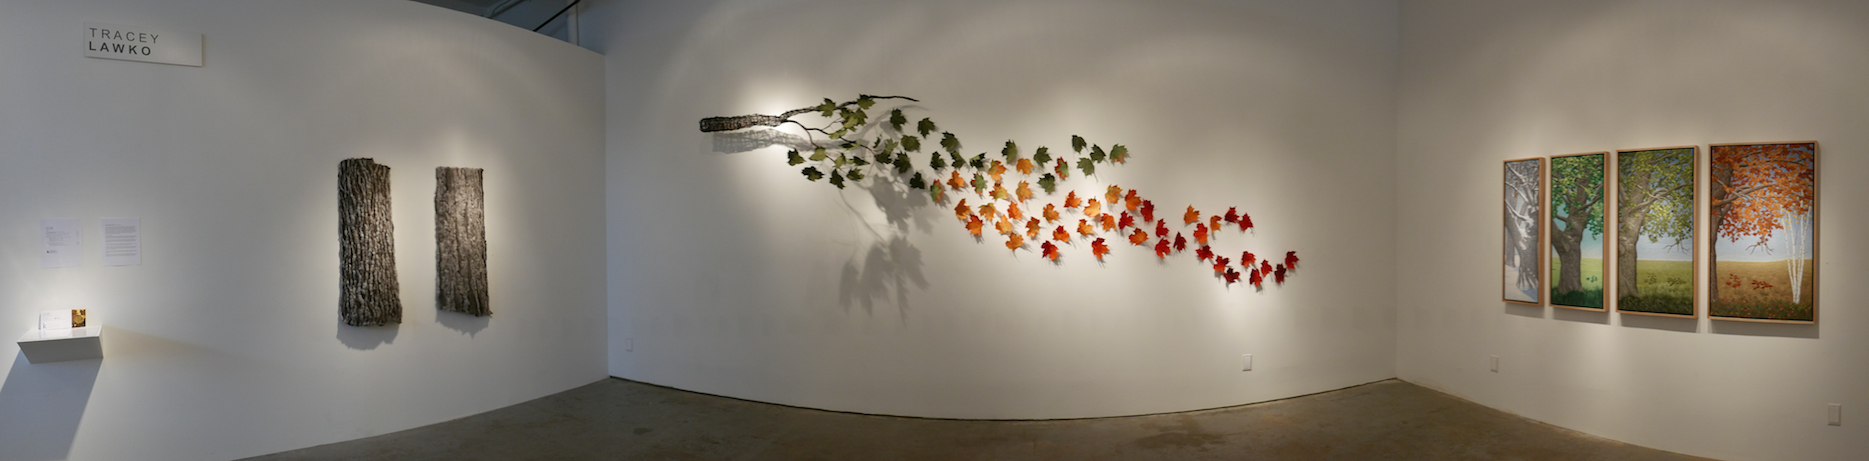 Change Enables Growth Installation by Tracey Lawko at David Kaye Gallery